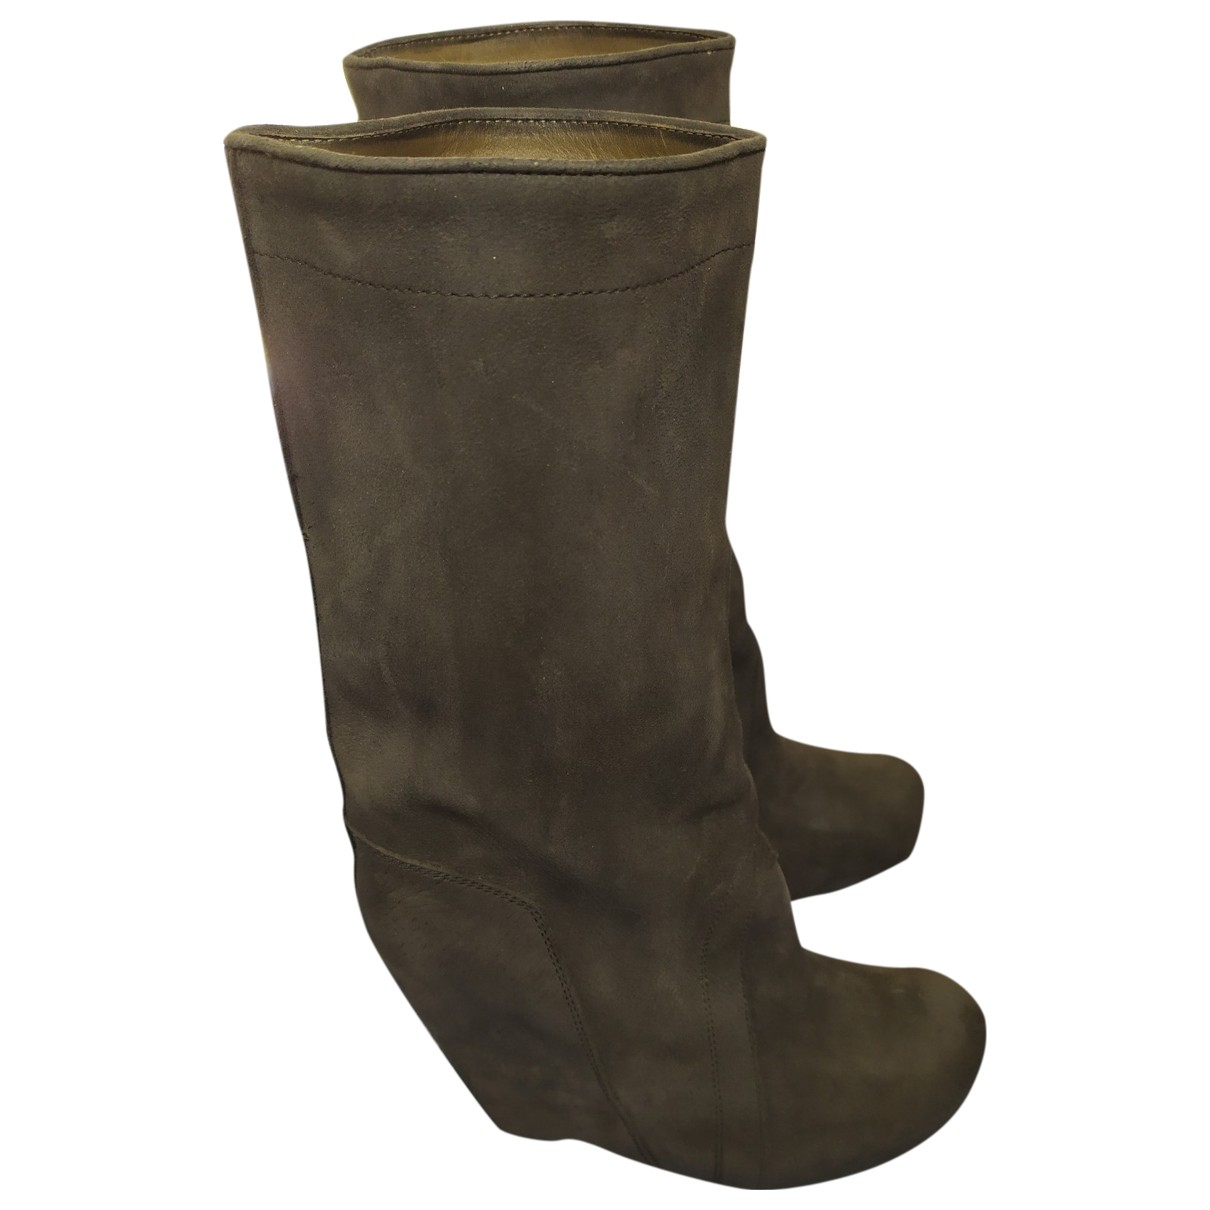 Rick Owens N Grey Leather Boots for Women 40 IT